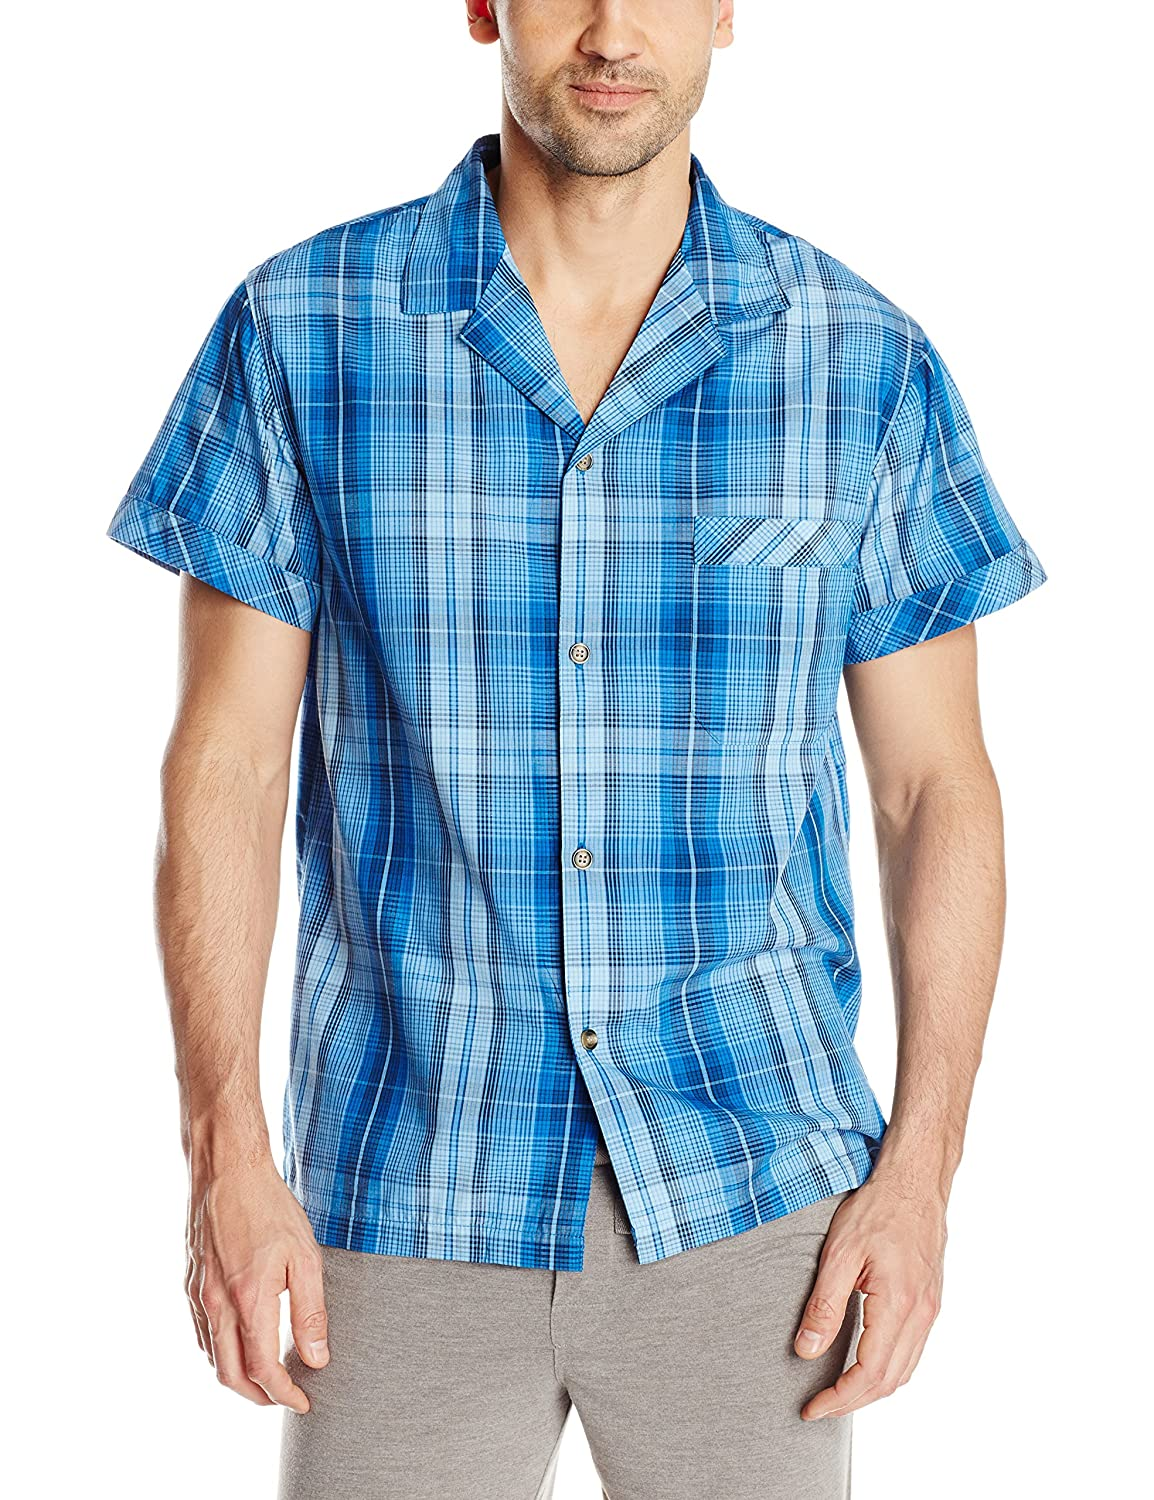 Intimo Men's Yarn Dye 0374 Plaid Woven Sleep Top Siberian Sky Large Intimo Men's Sleepwear 019387